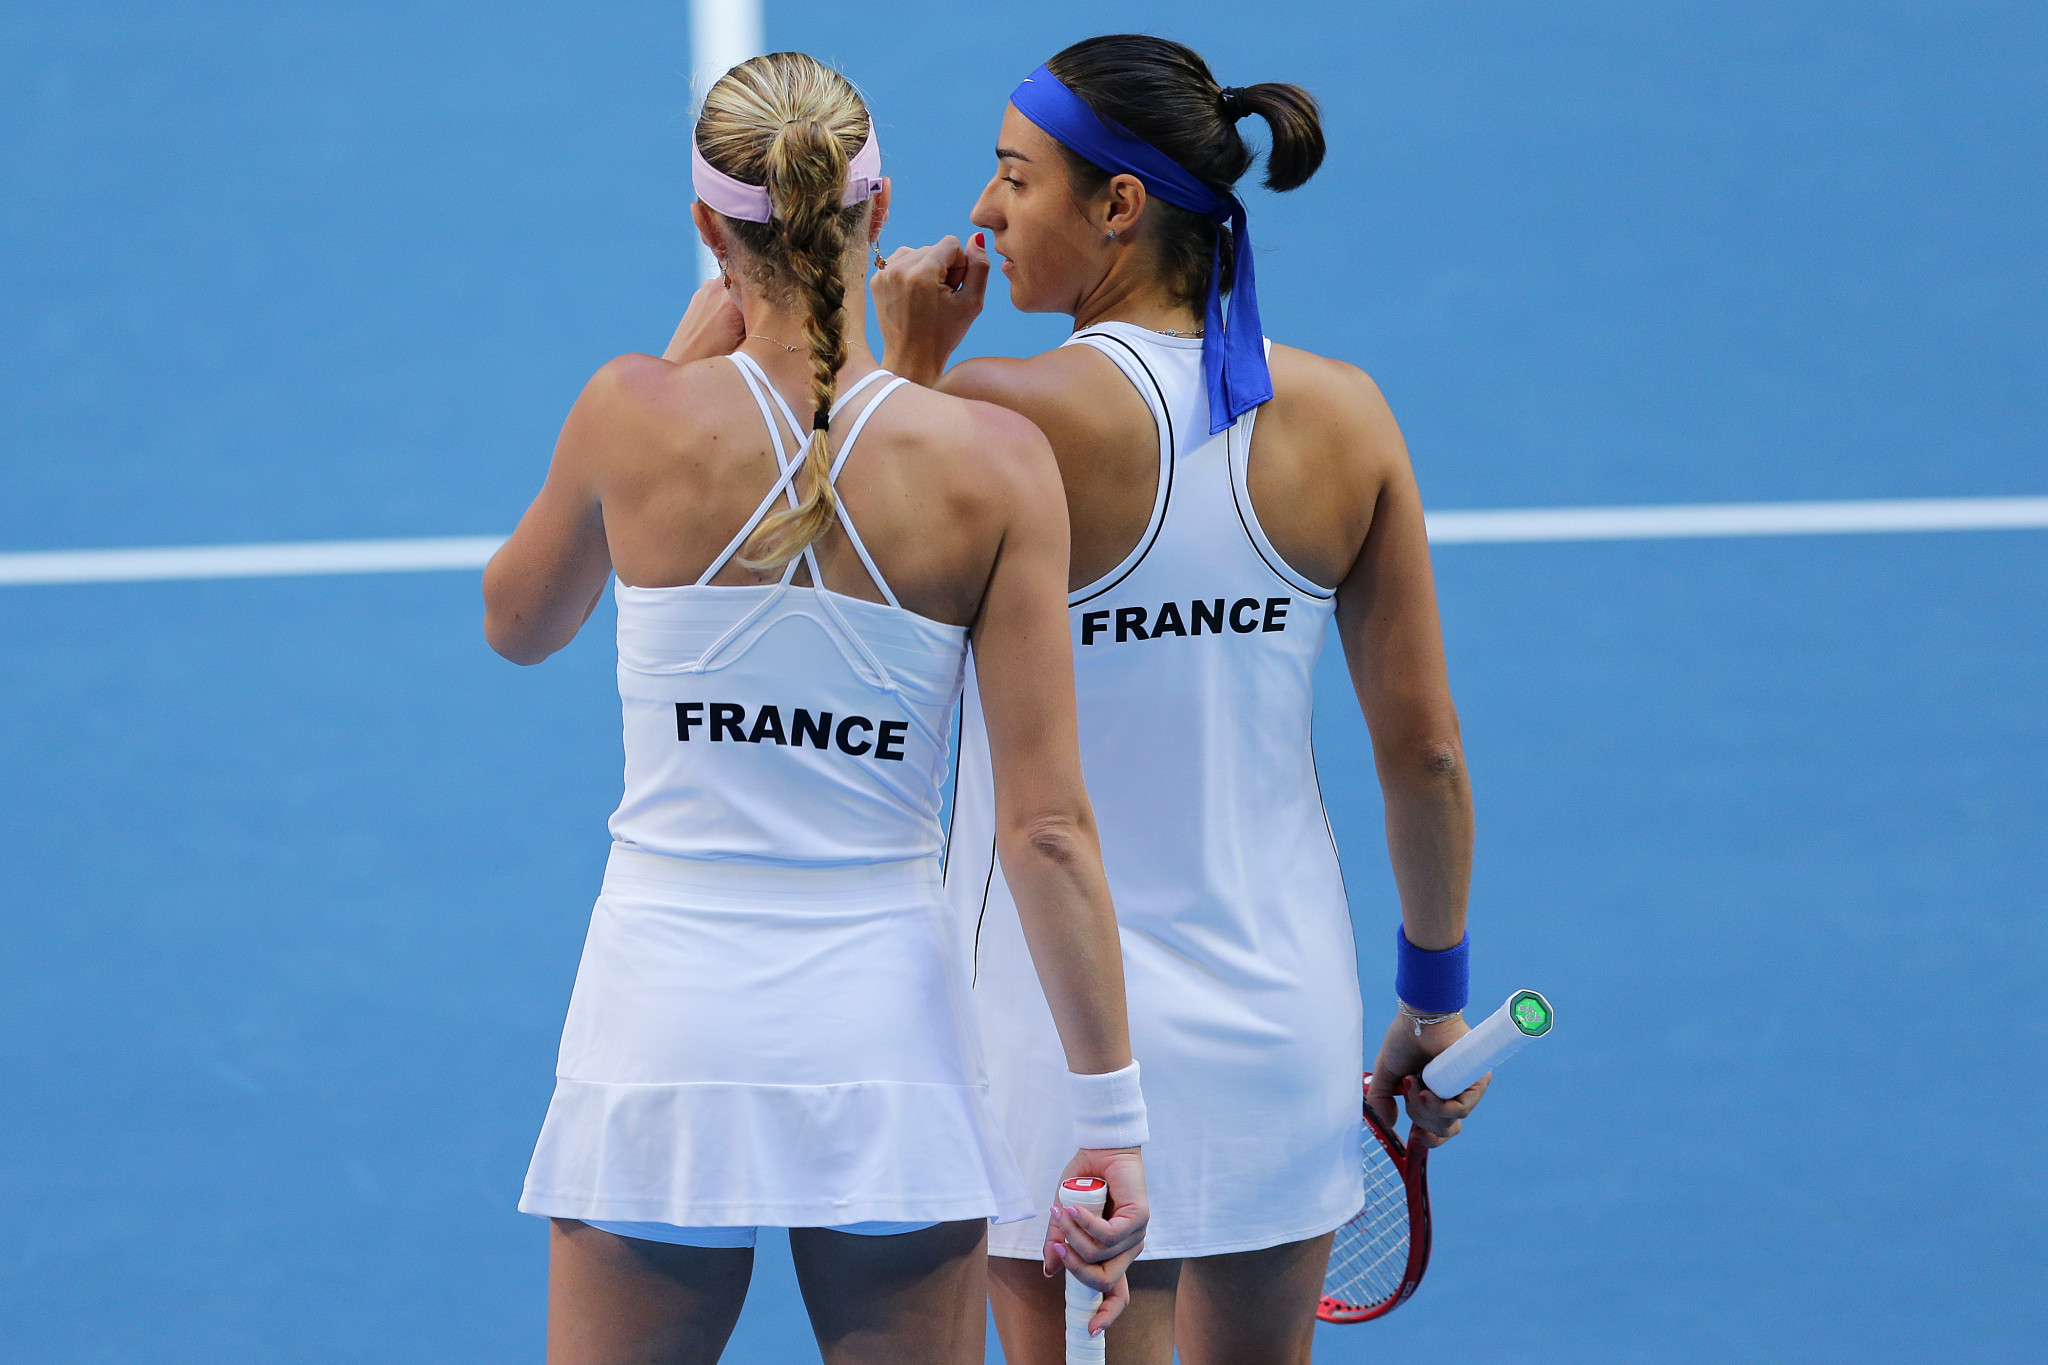 Defending champions France to open Billie Jean King Cup Finals in November against Canada